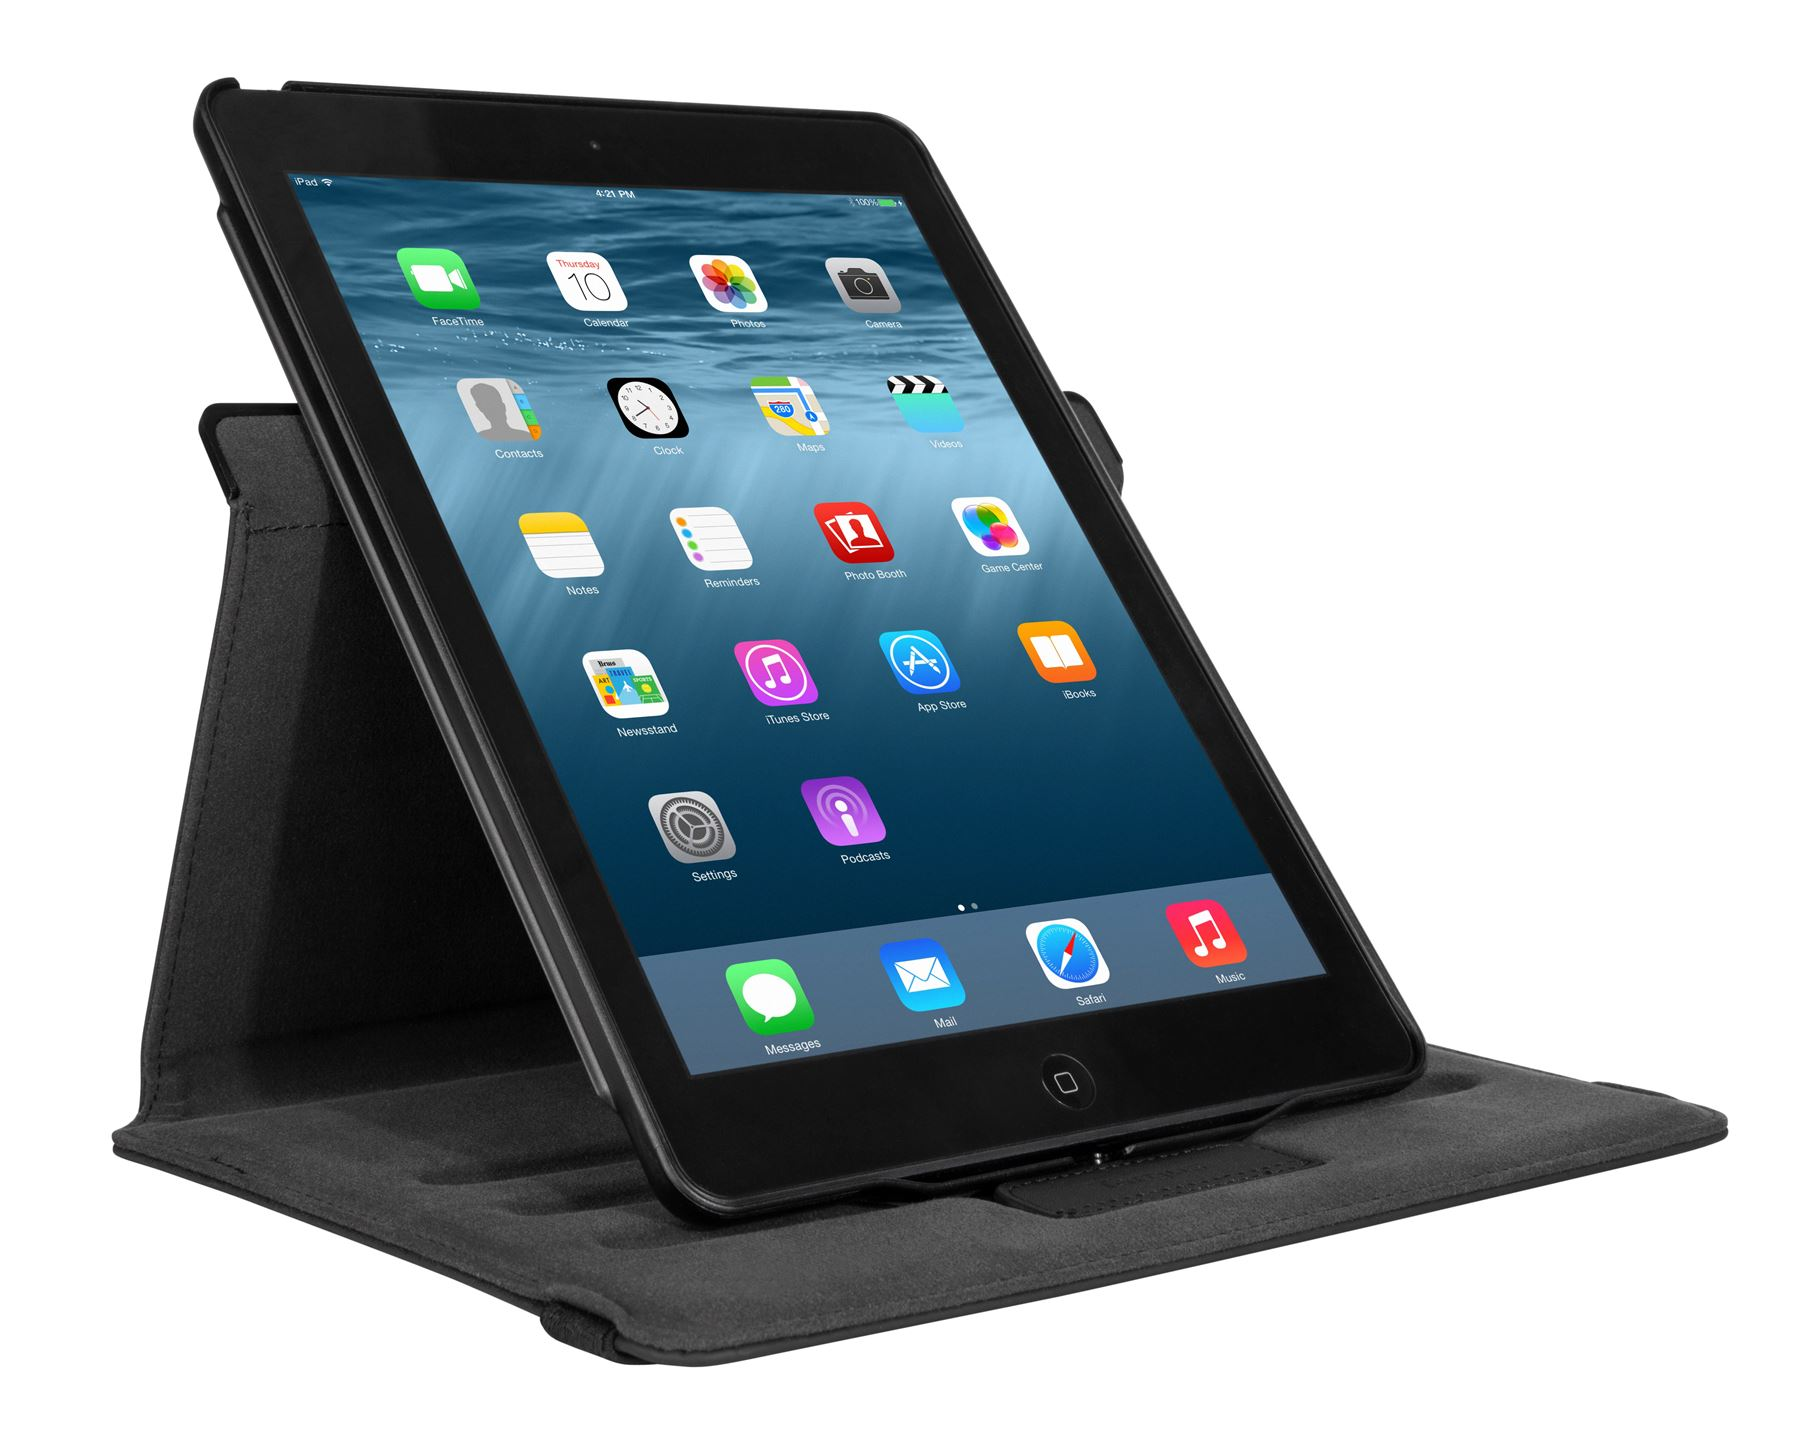 Ipad Air 2 Versavu 360 Slim Case For Ipad Air 2 Thz471us Black